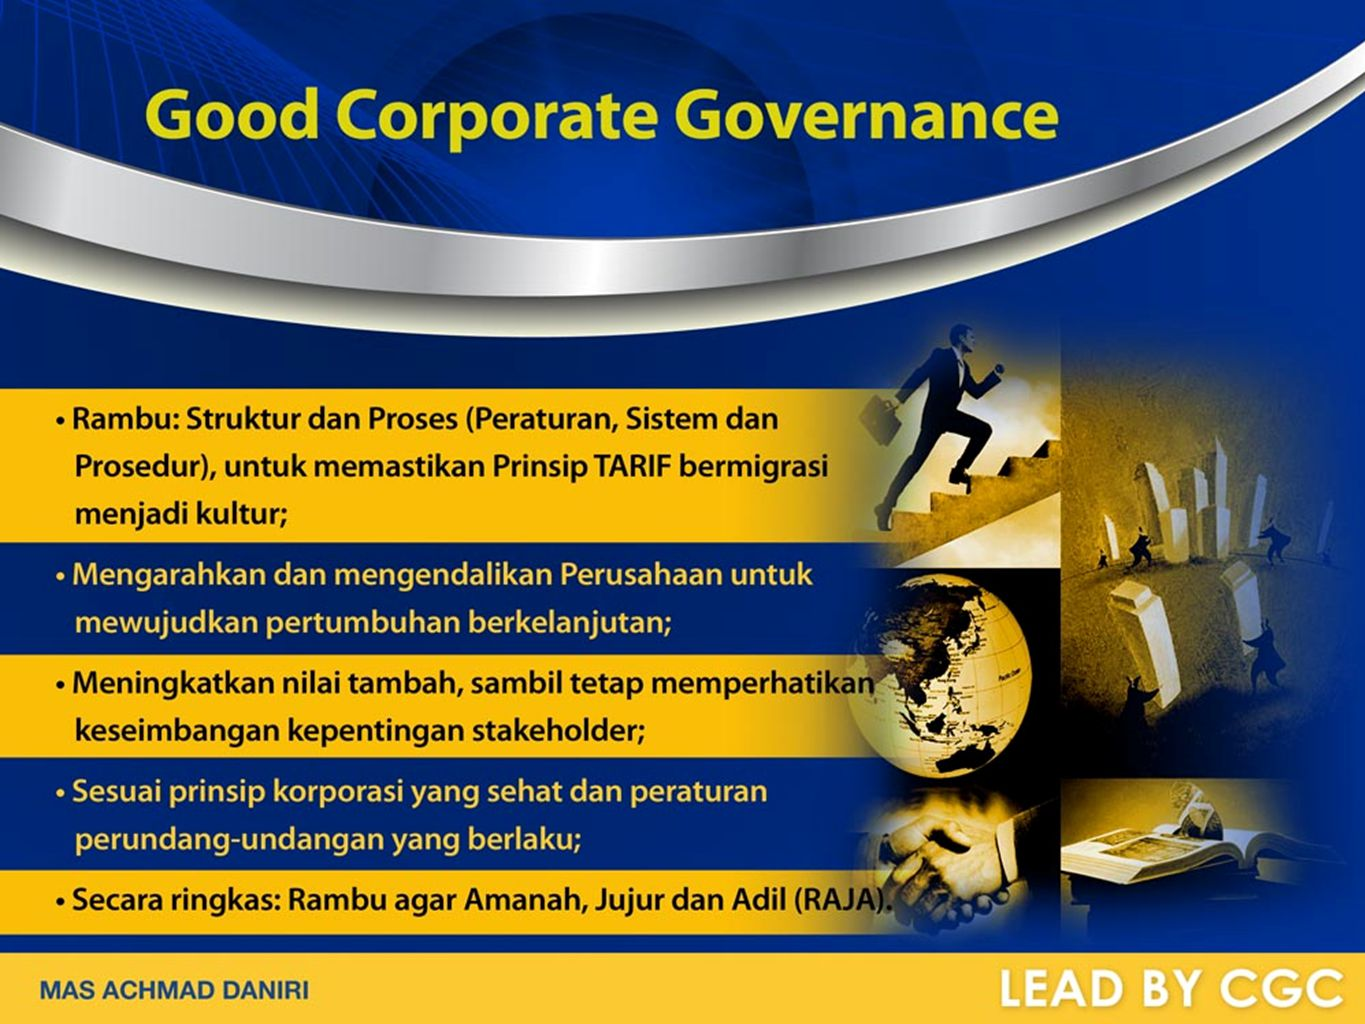 GCG IMPLEMENTATION BENEFITS Improved Control and Risk Mitigation Low Cost Capital Access Increased Operational Efficiency Enhanced Corporate Reputation Triple Bottom Line Sustainable Growth MAS ACHMAD DANIRI LEAD BY GCG